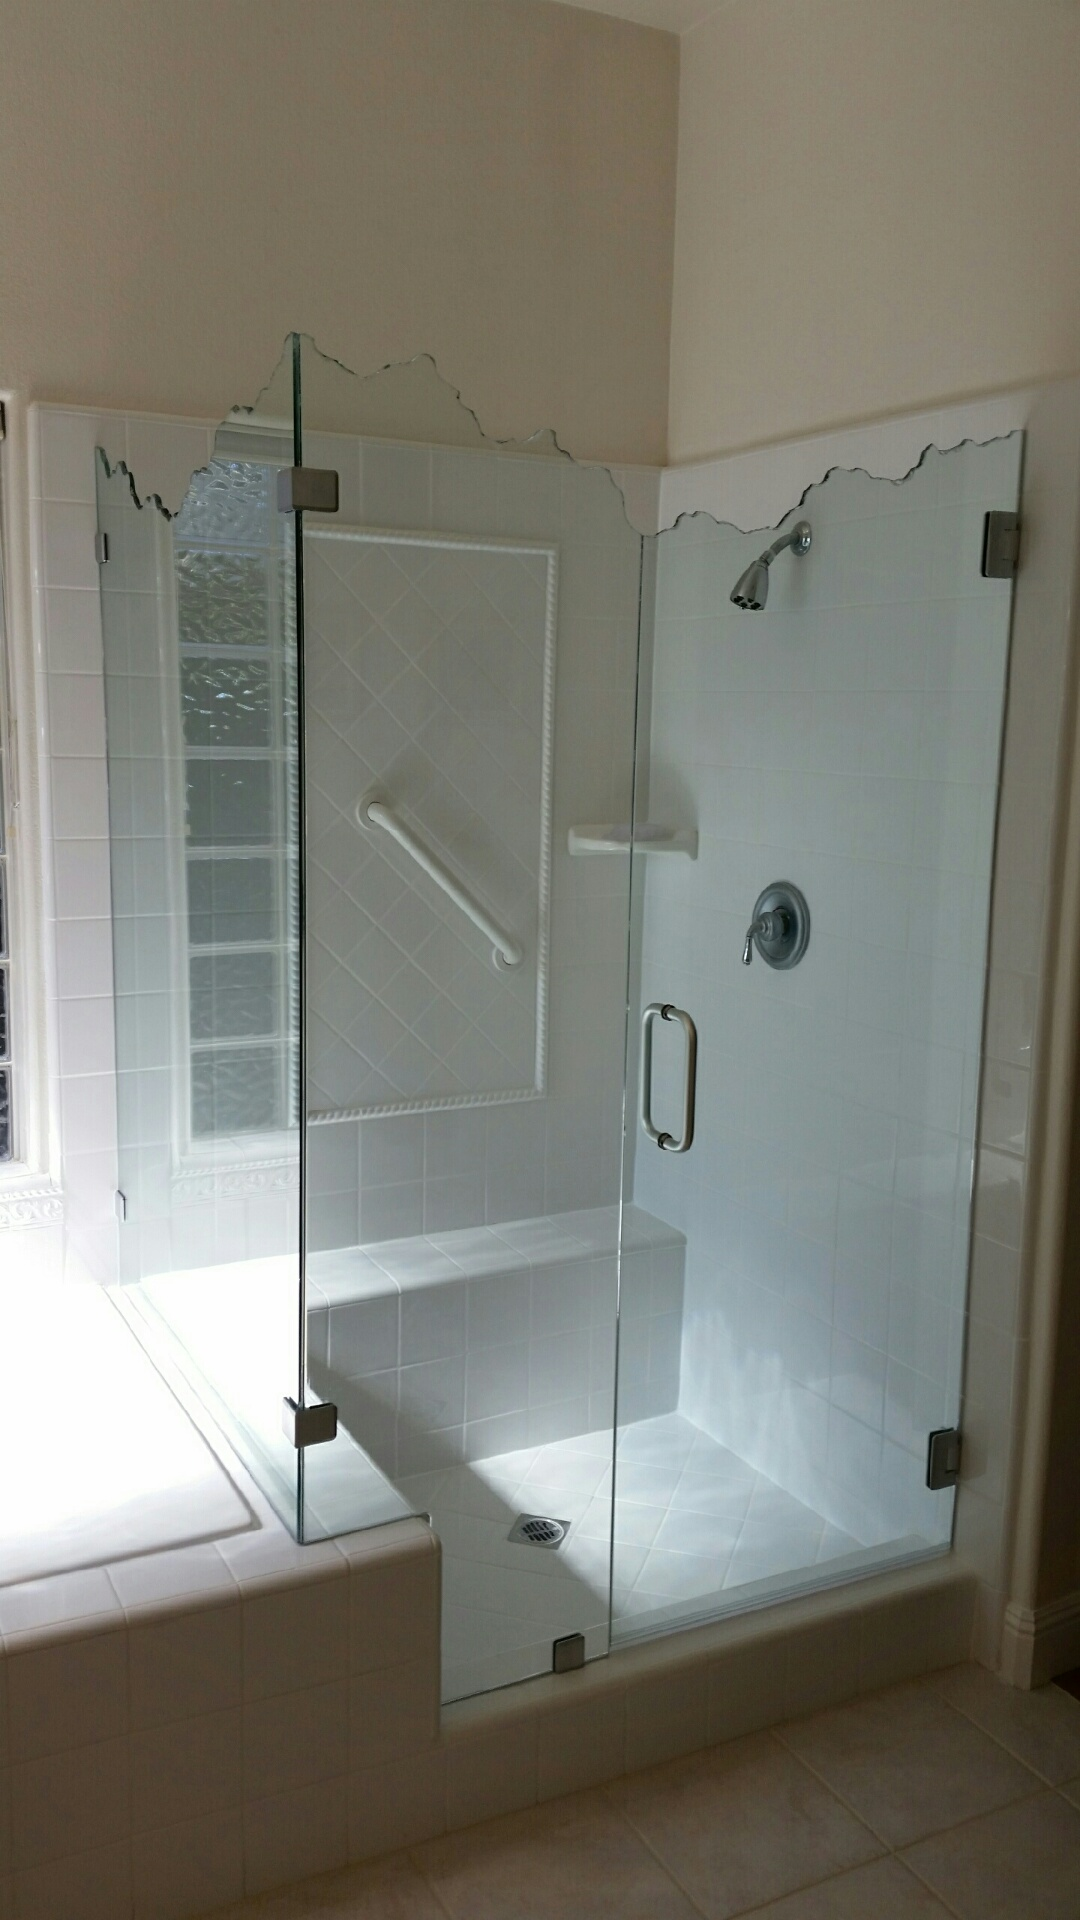 stalls shower x tub one and all in surround bathtub unit combo cleaner deep fiberglass stall piece